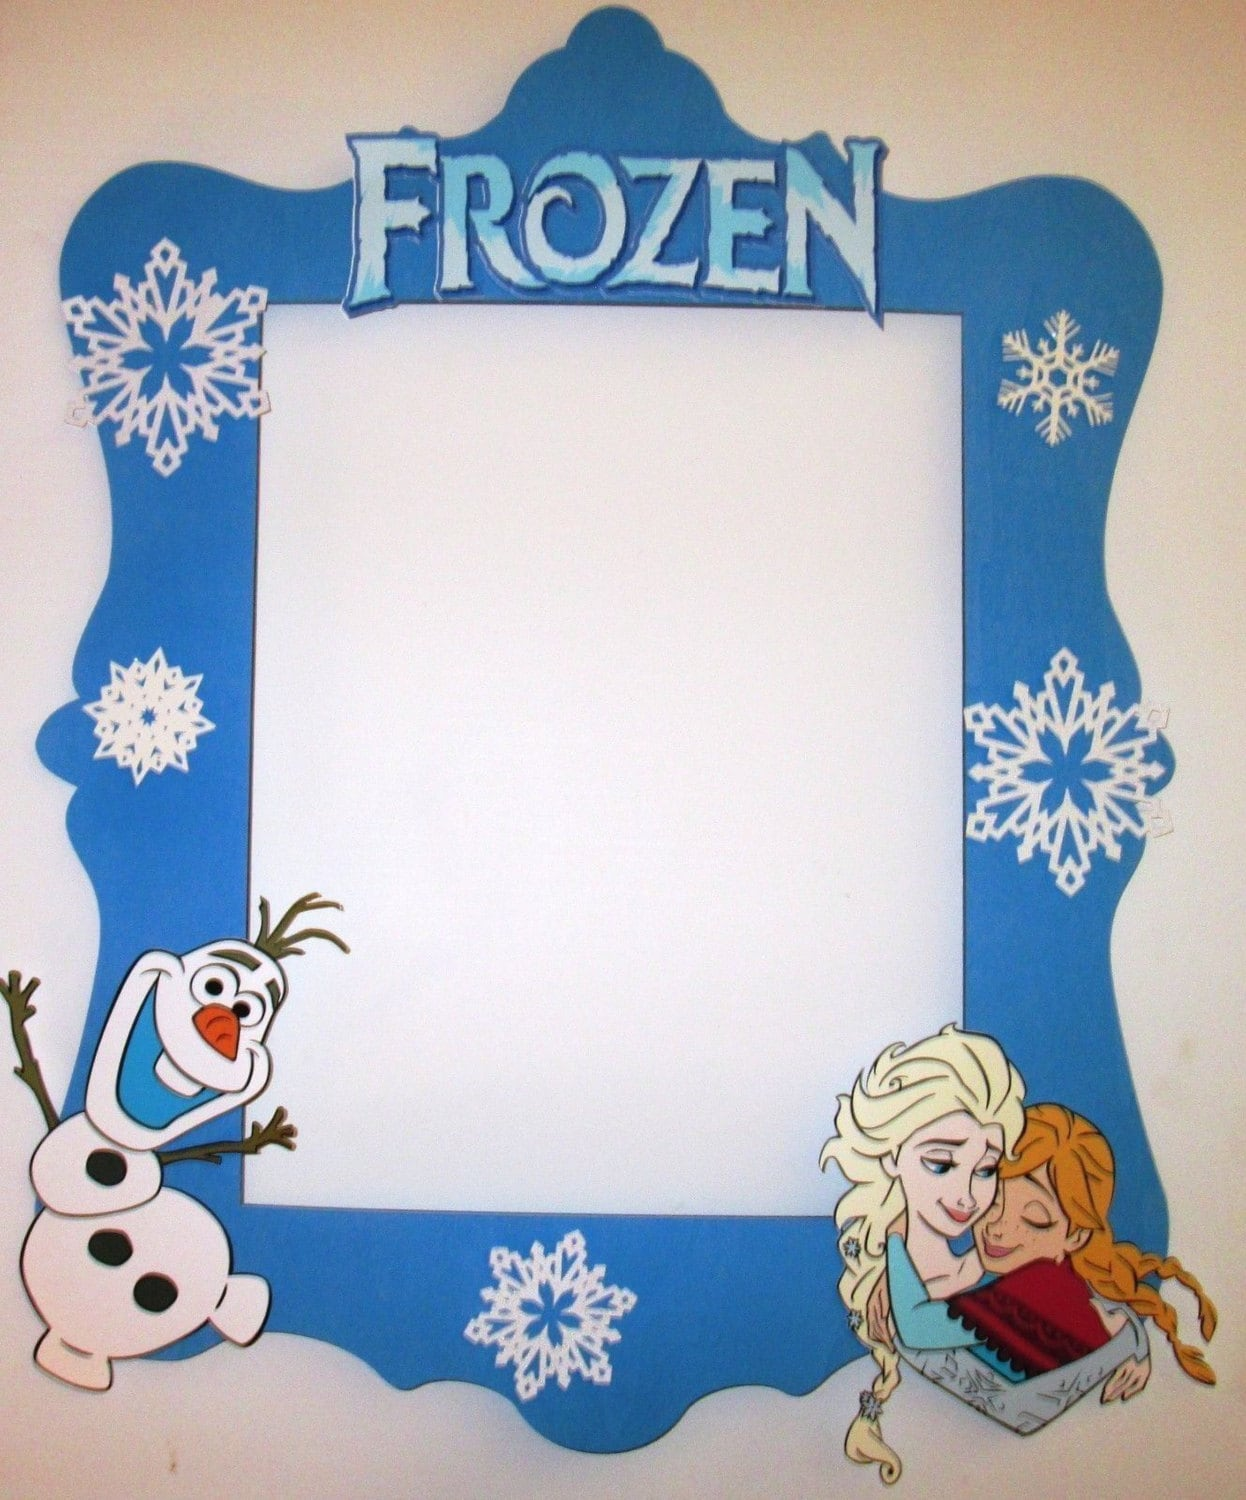 Frozen Photo Booth Frame great as a photo booth prop or a